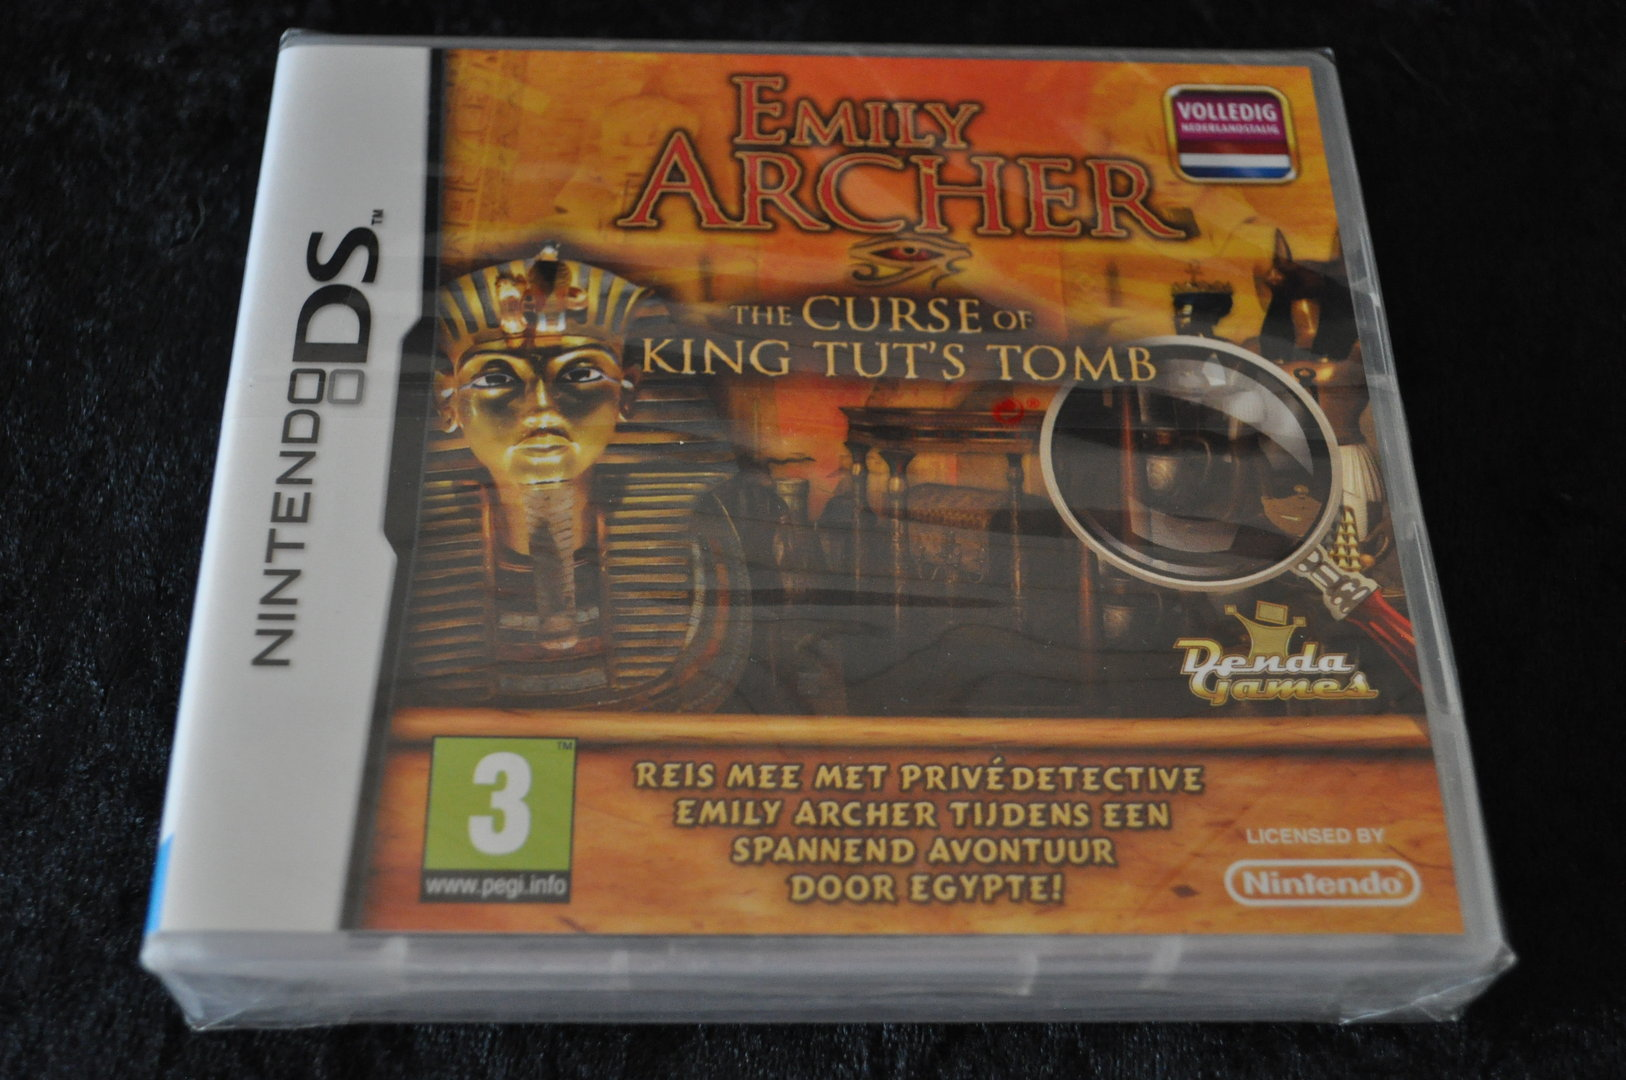 Nintendo DS Emily Archer The Curse Of King Tut's Tomb